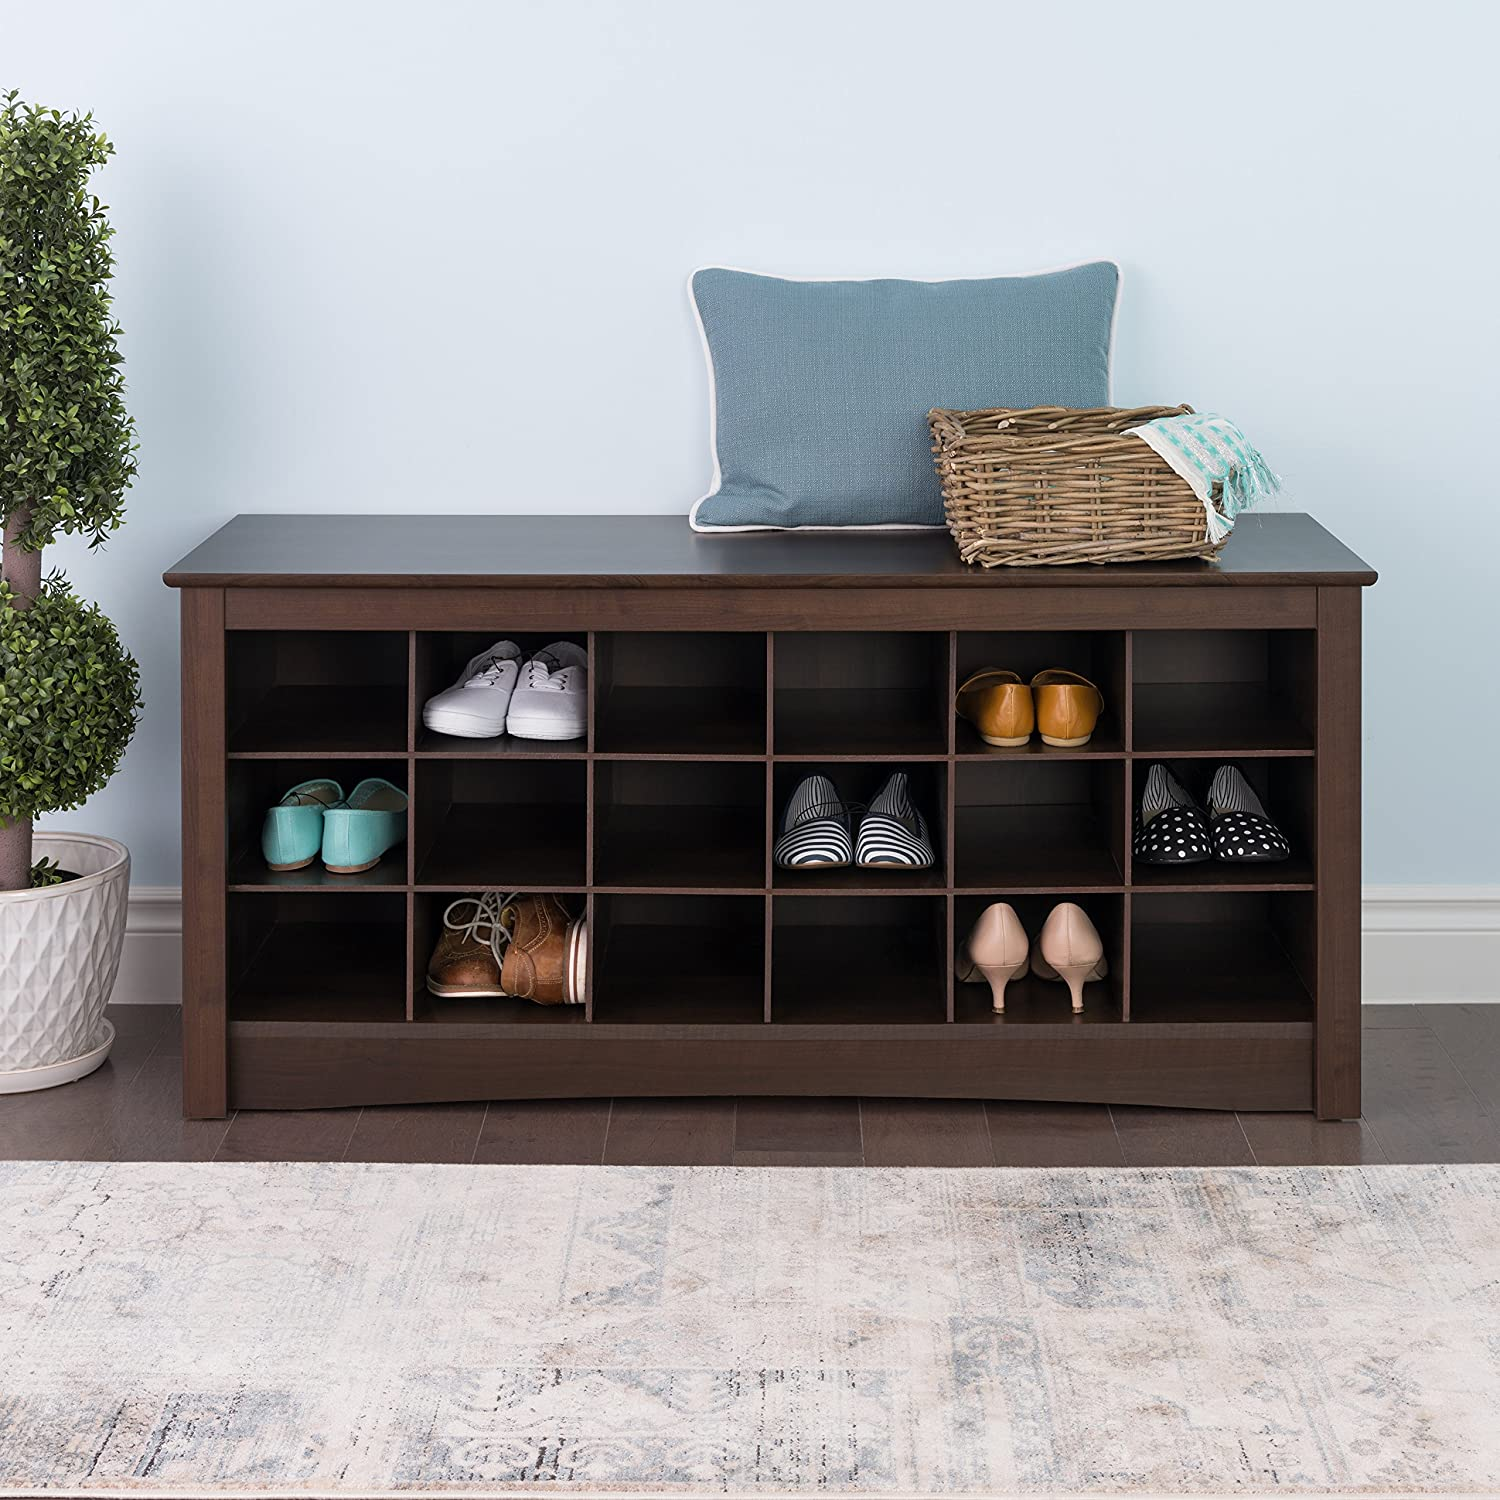 Shoe storage cubbie entryway bench espresso organizer rack furniture by prepac ebay Entryway shoe storage bench